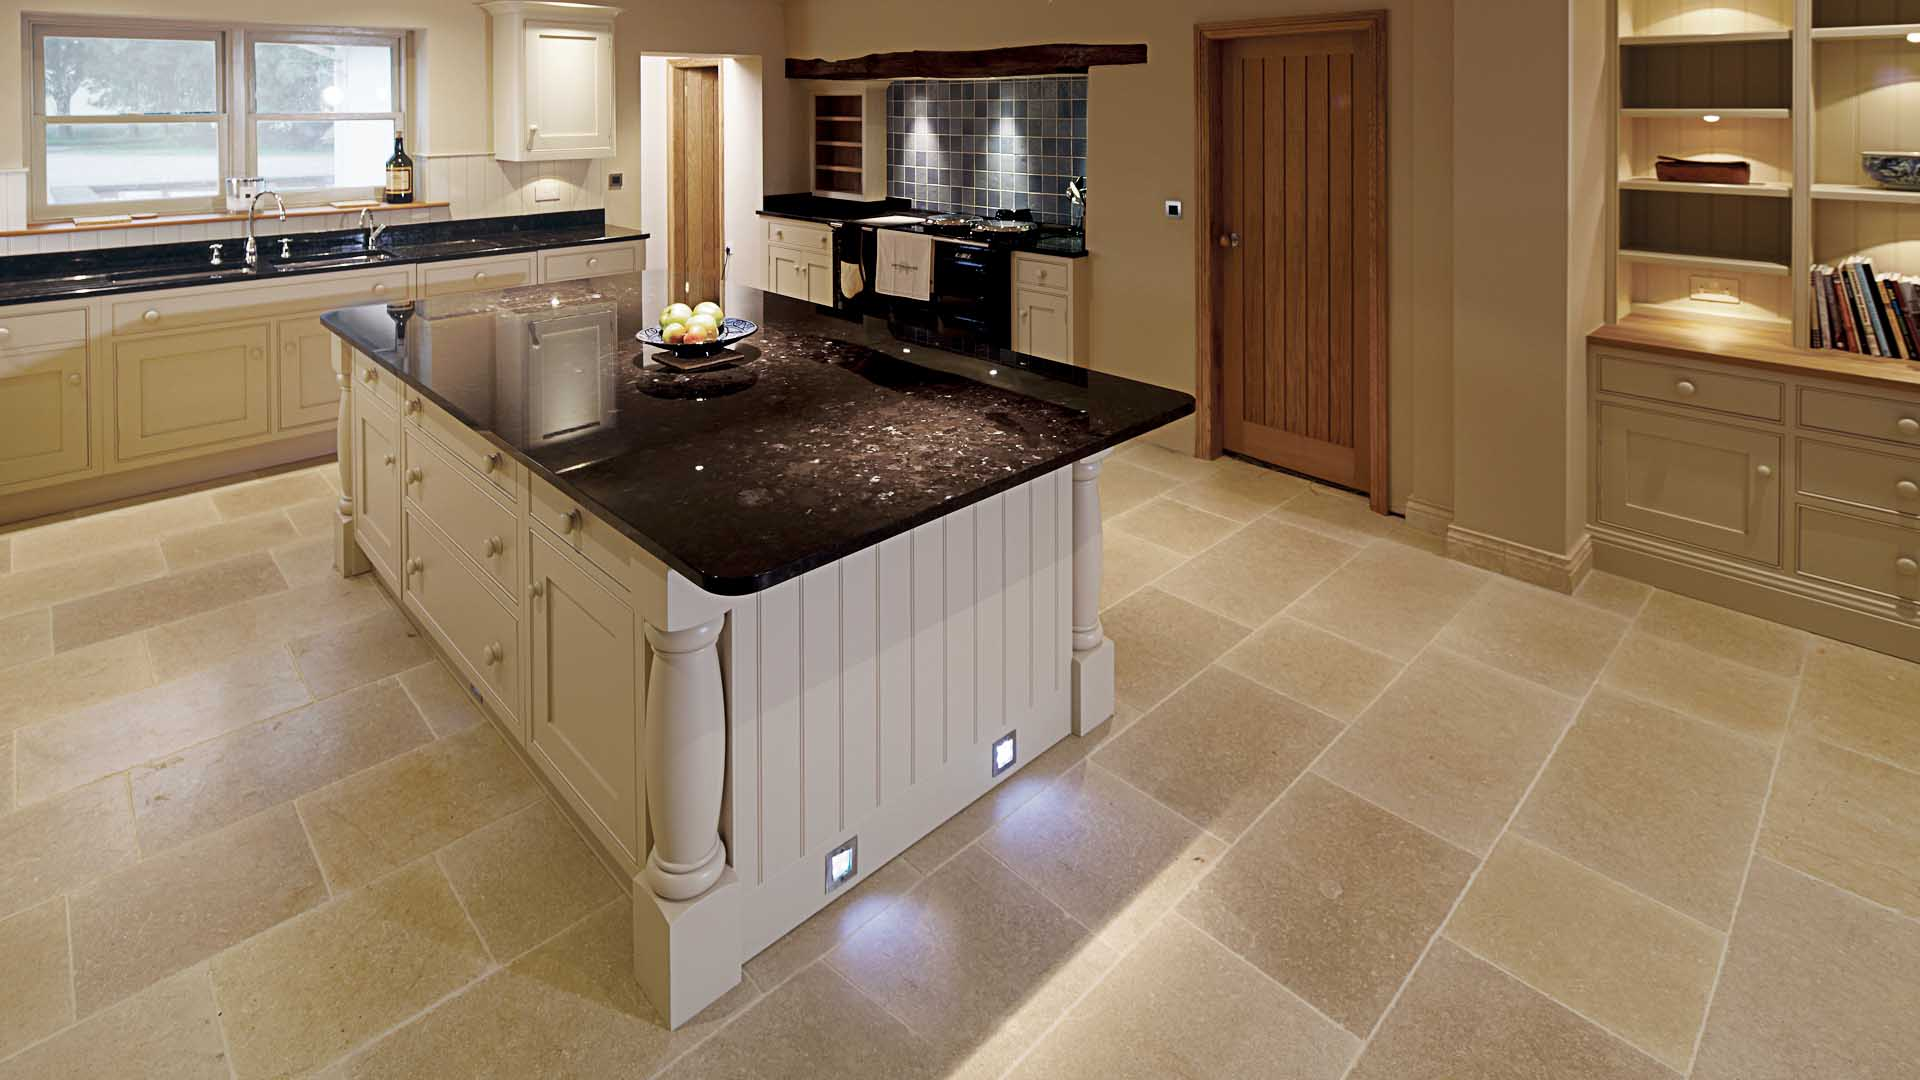 11 Advantages of Black Quartz Kitchen Worktops - SurfaceCo